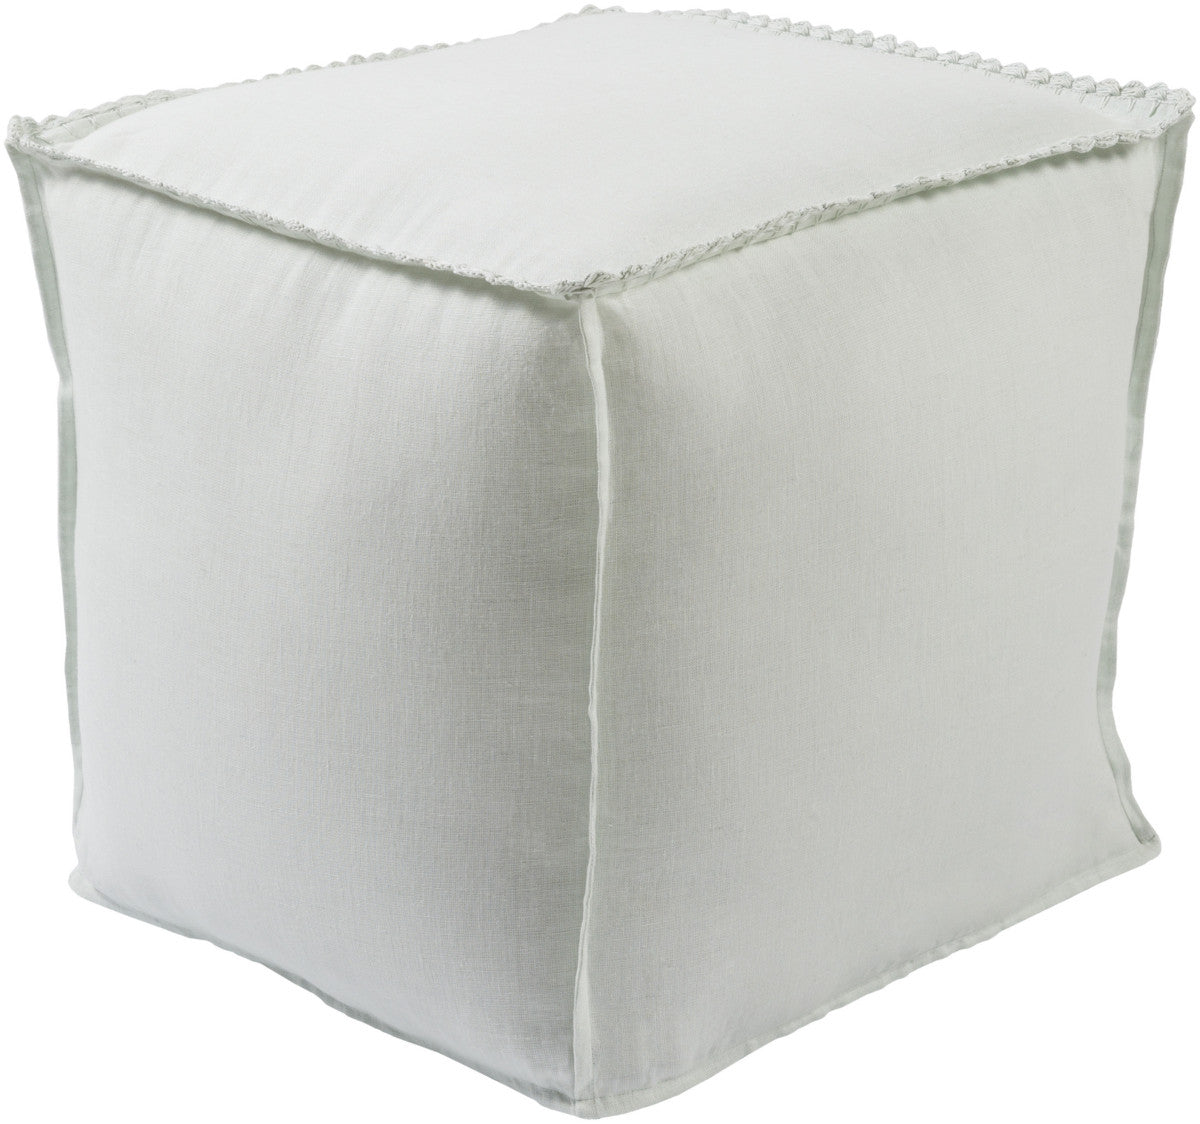 Surya Evelyn EVPF-001 Pouf